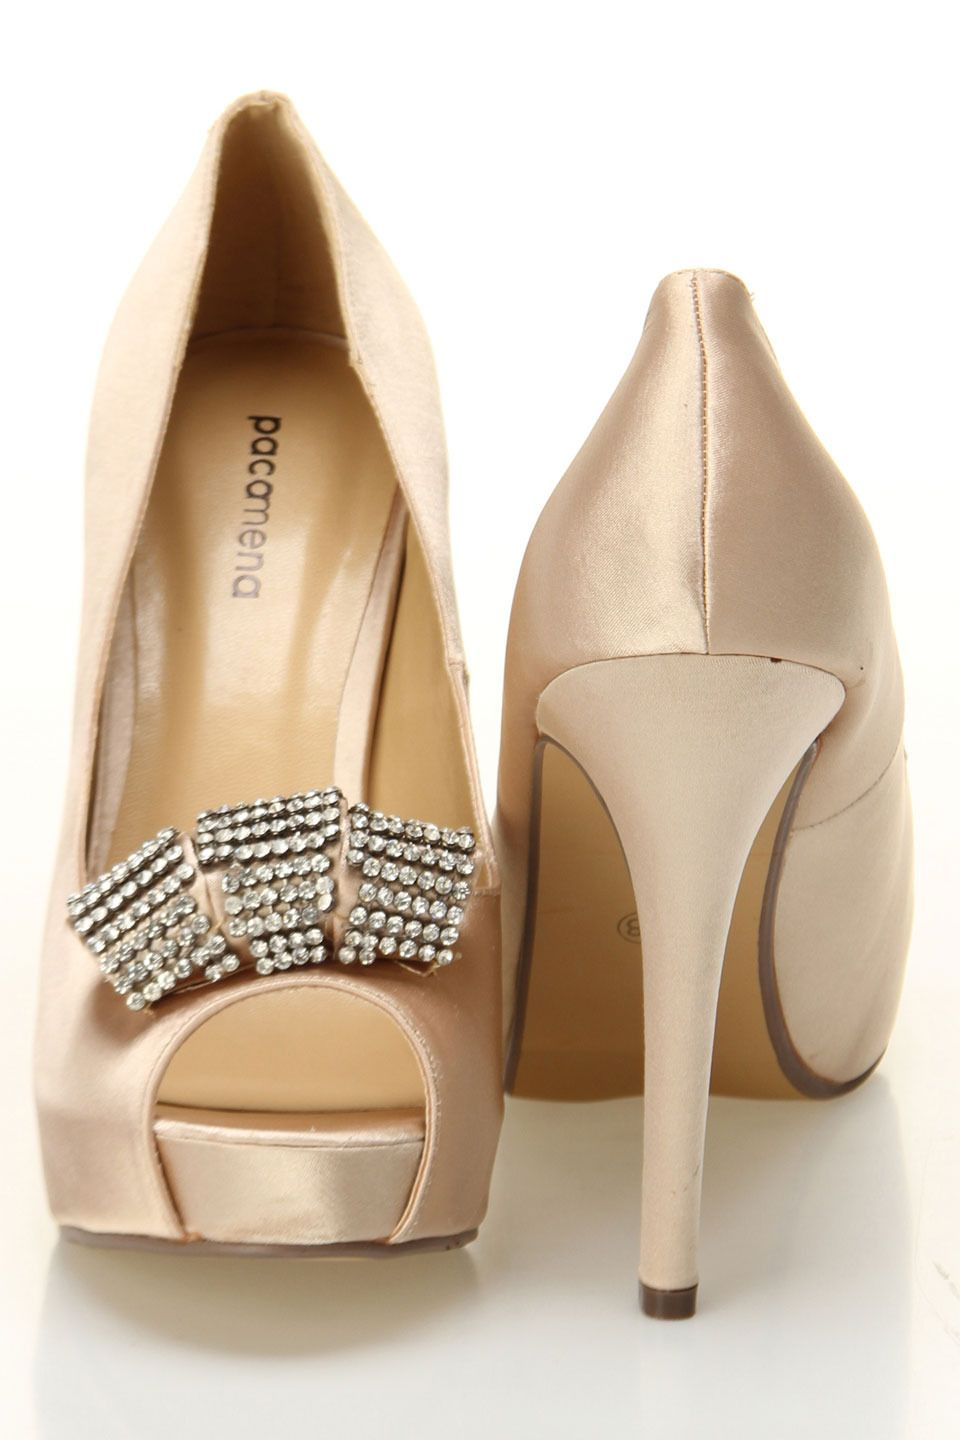 paco mena philippa pumps in nude pascale le de groof shoes paco mena philippa pumps in nude pascale le de groof